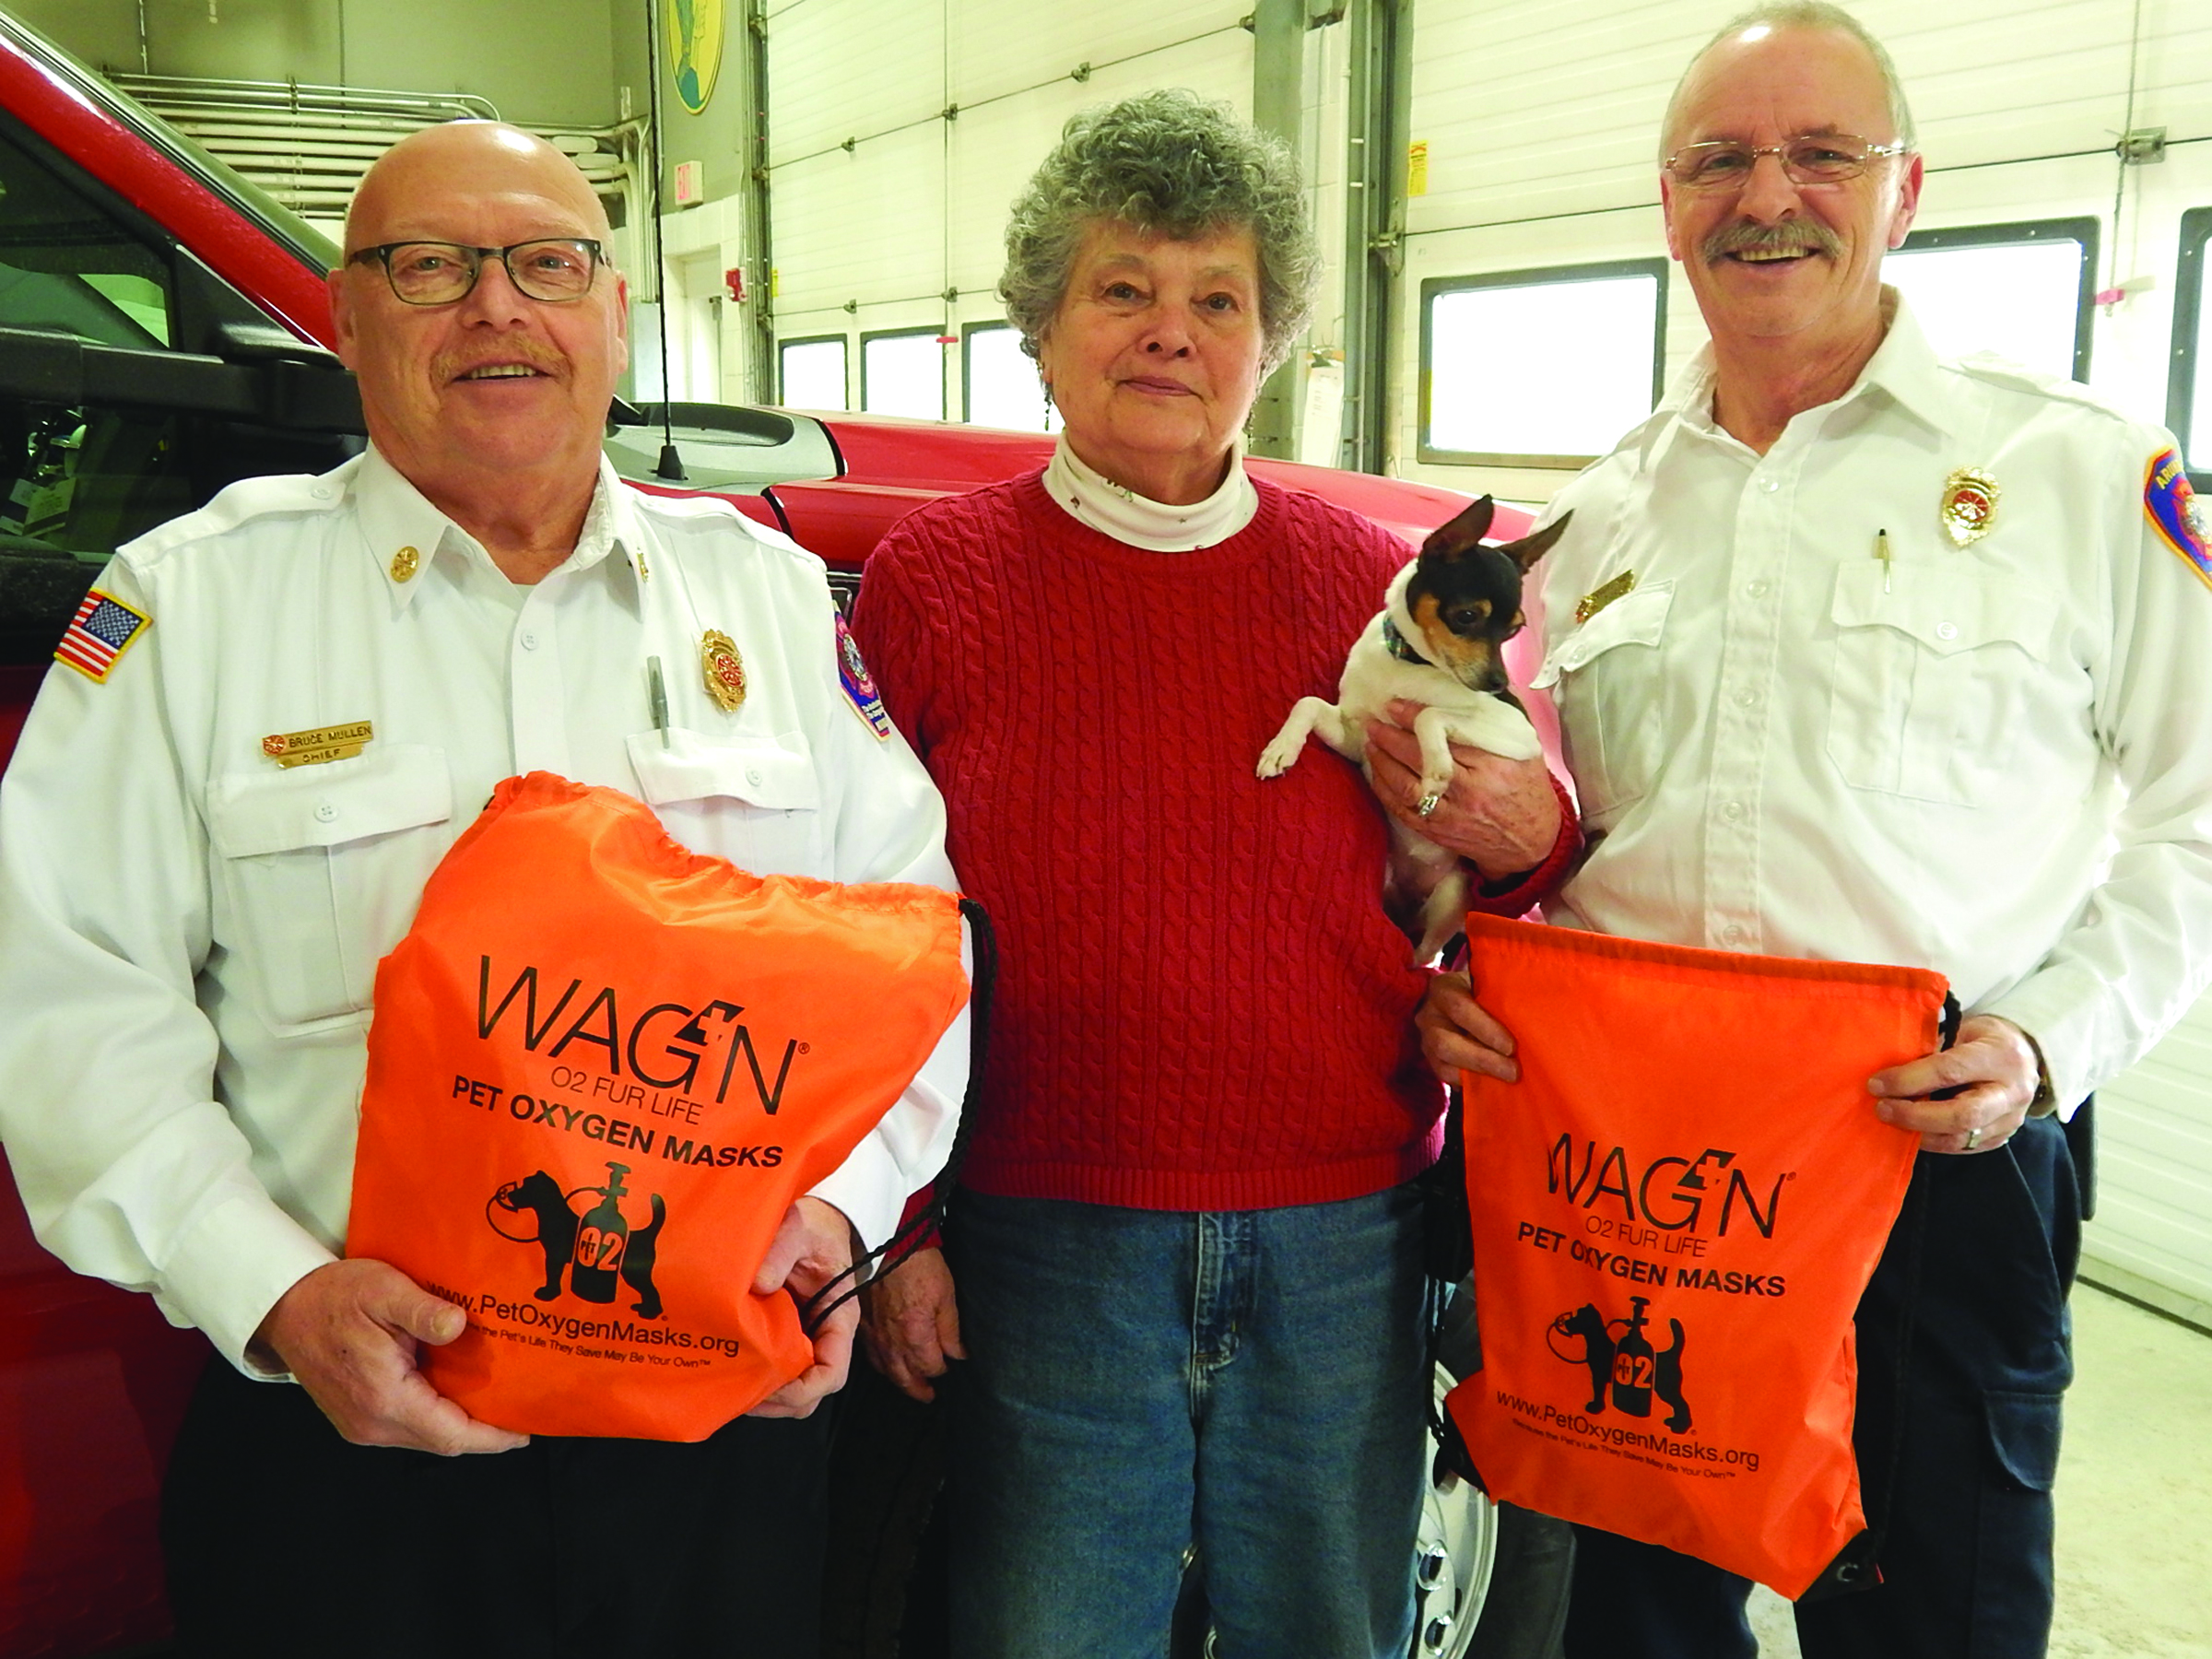 The York County Kennel Club has donated two pet mask oxygen systems to Arundel Fire-Rescue in an effort to  help firefighters save the lives of pets. From left are Arundel Fire-Rescue Chief Bruce Mullen, York County Kennel President Sandy Bergeron, 2-year-old Toy Terrier Solo and Arundel Deputy Fire-Rescue Chief Renald Tardif. ED PIERCE/Journal Tribune